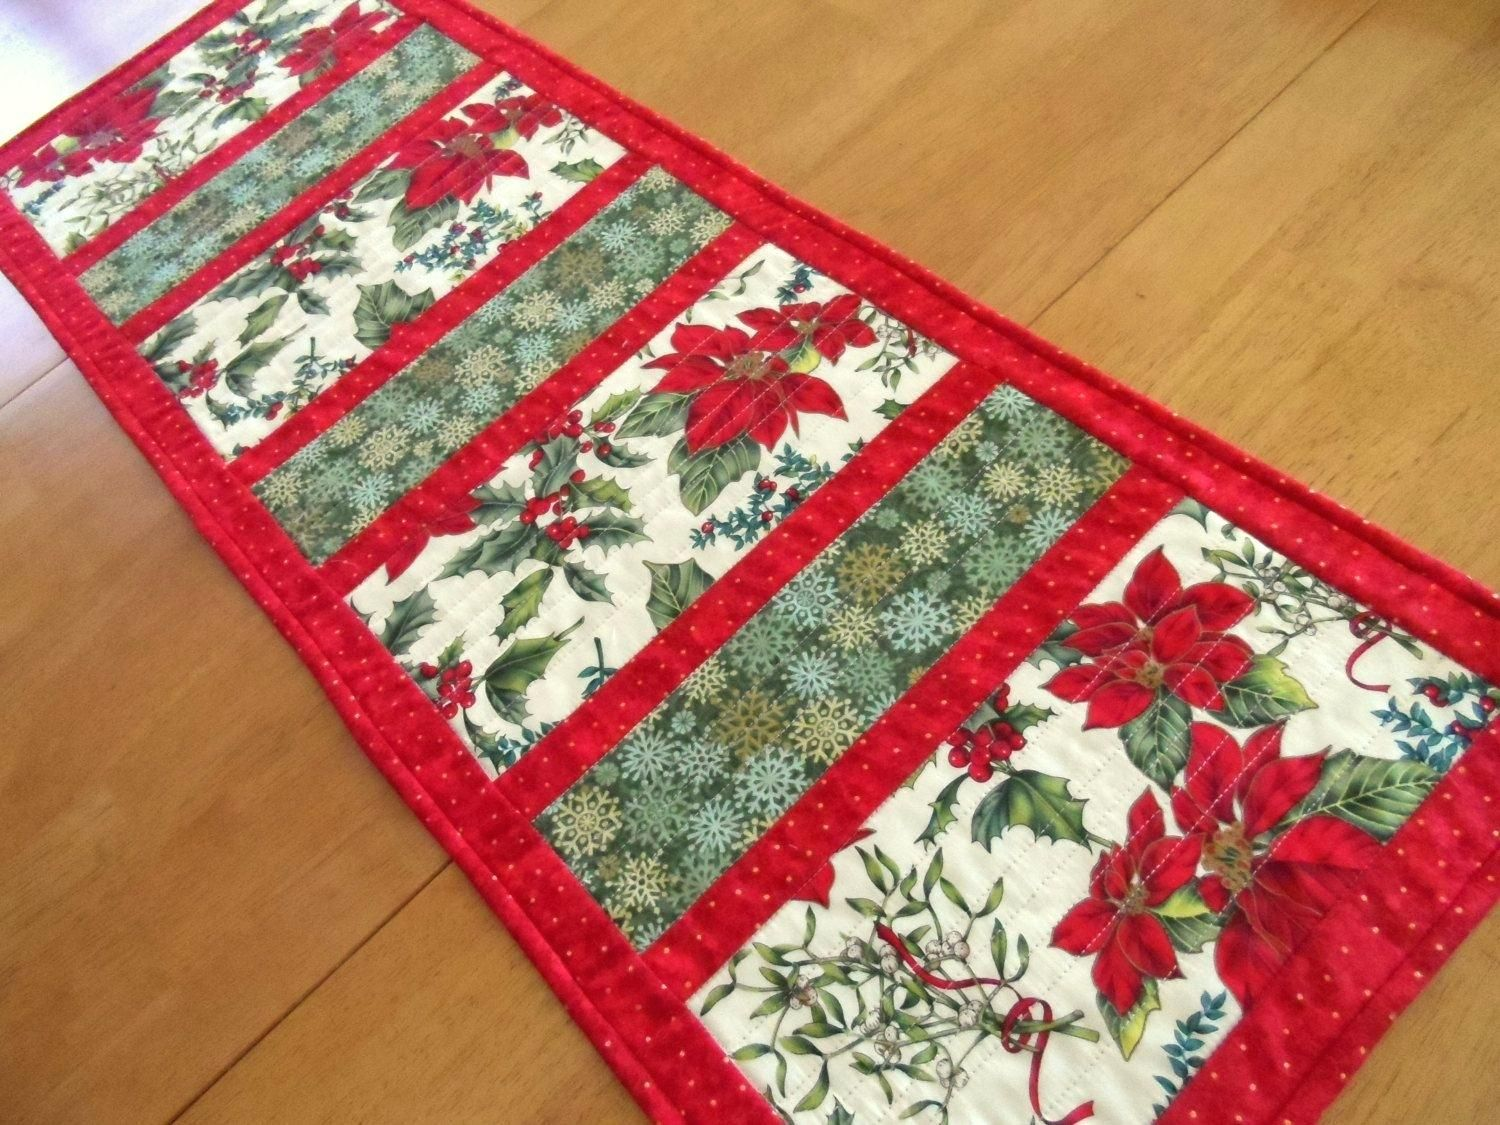 Quilted Christmas Table Runner Patterns Free Easy.Christmas Table Runners On Sale Crochet Runner Patterns Free